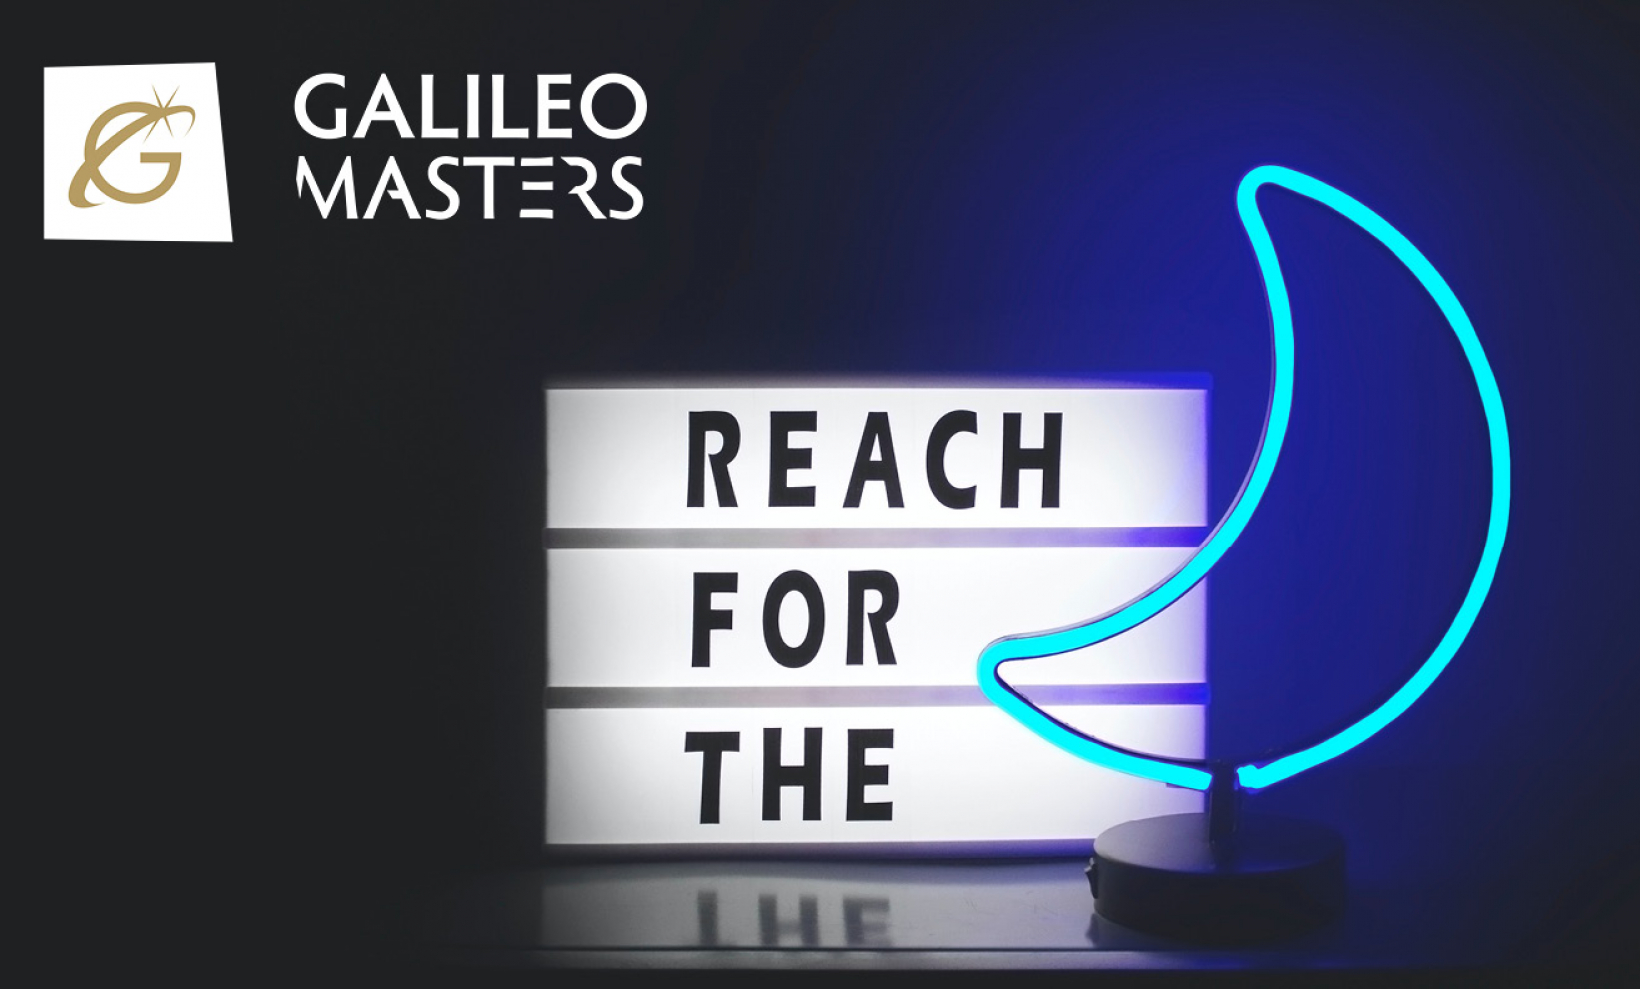 Take your ideas to the next level in this year's Galileo Masters